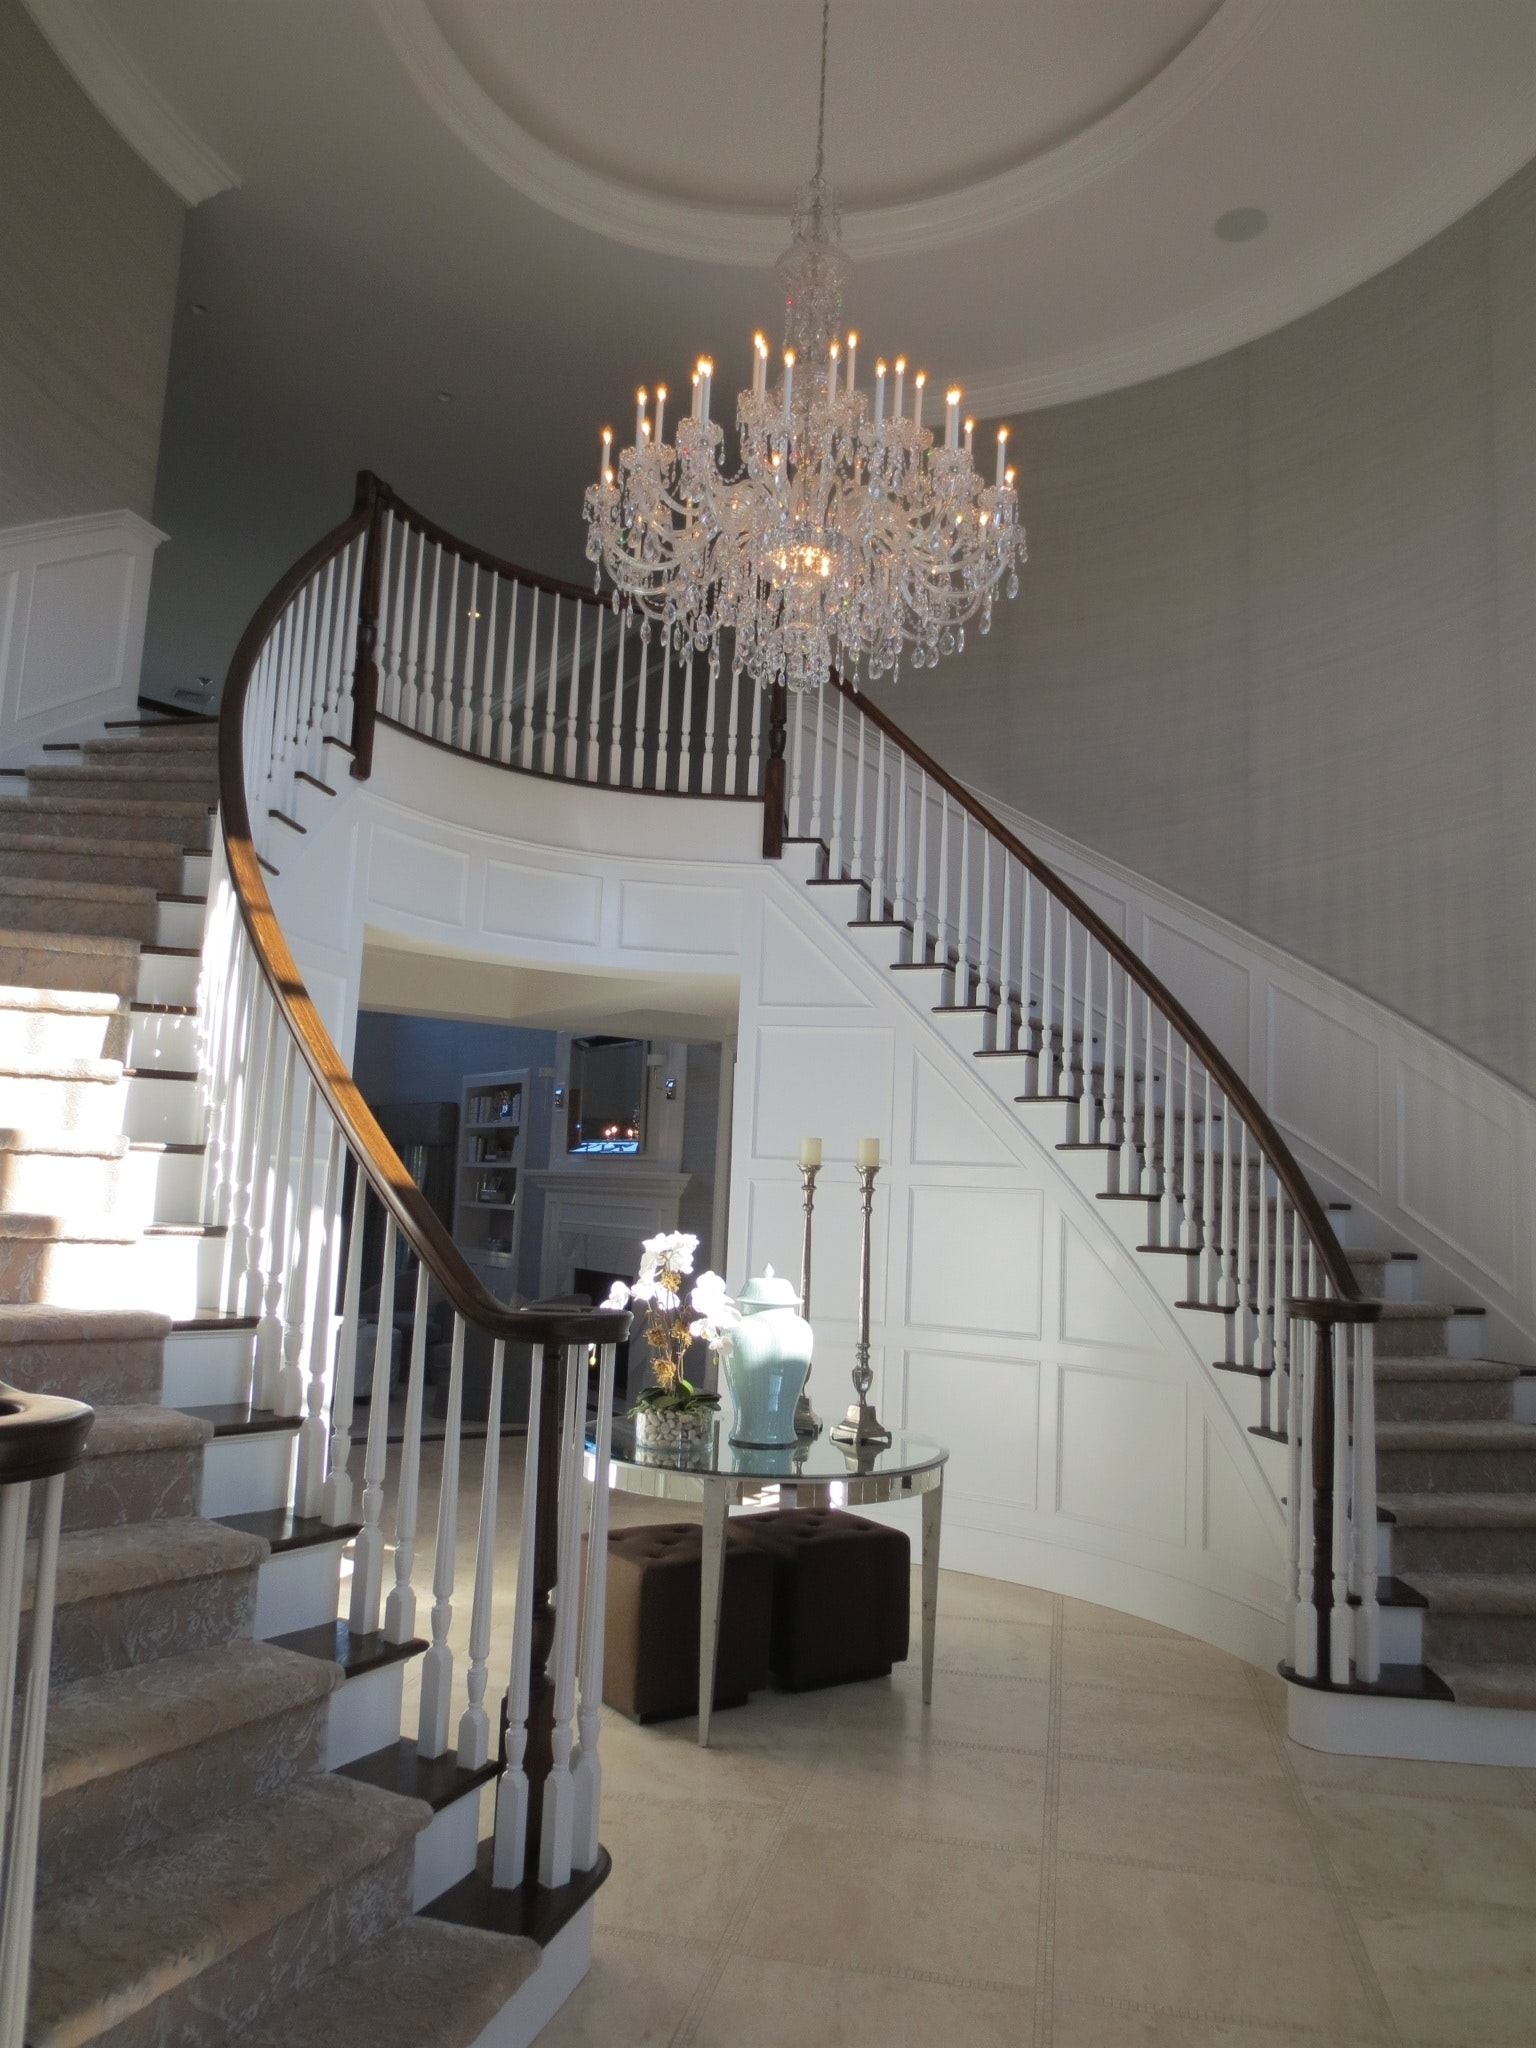 Latest Light : Large Chandeliers For Foyers And Best Stairway Lighting Inside Stairway Chandelier (View 5 of 20)